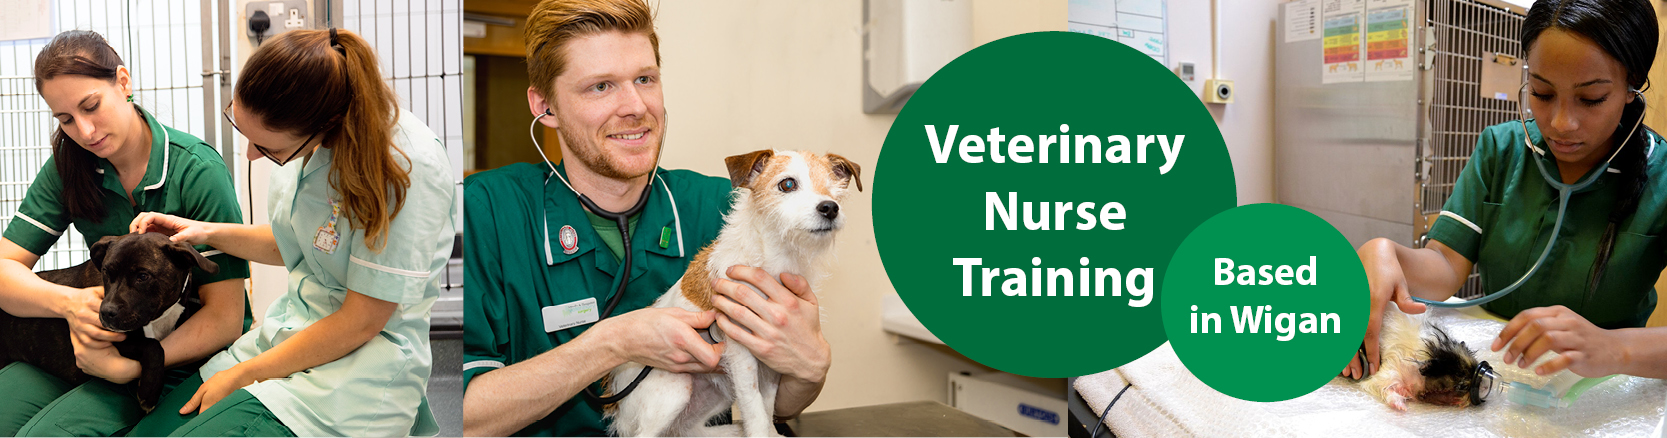 Veterinary nurse training in Wigan